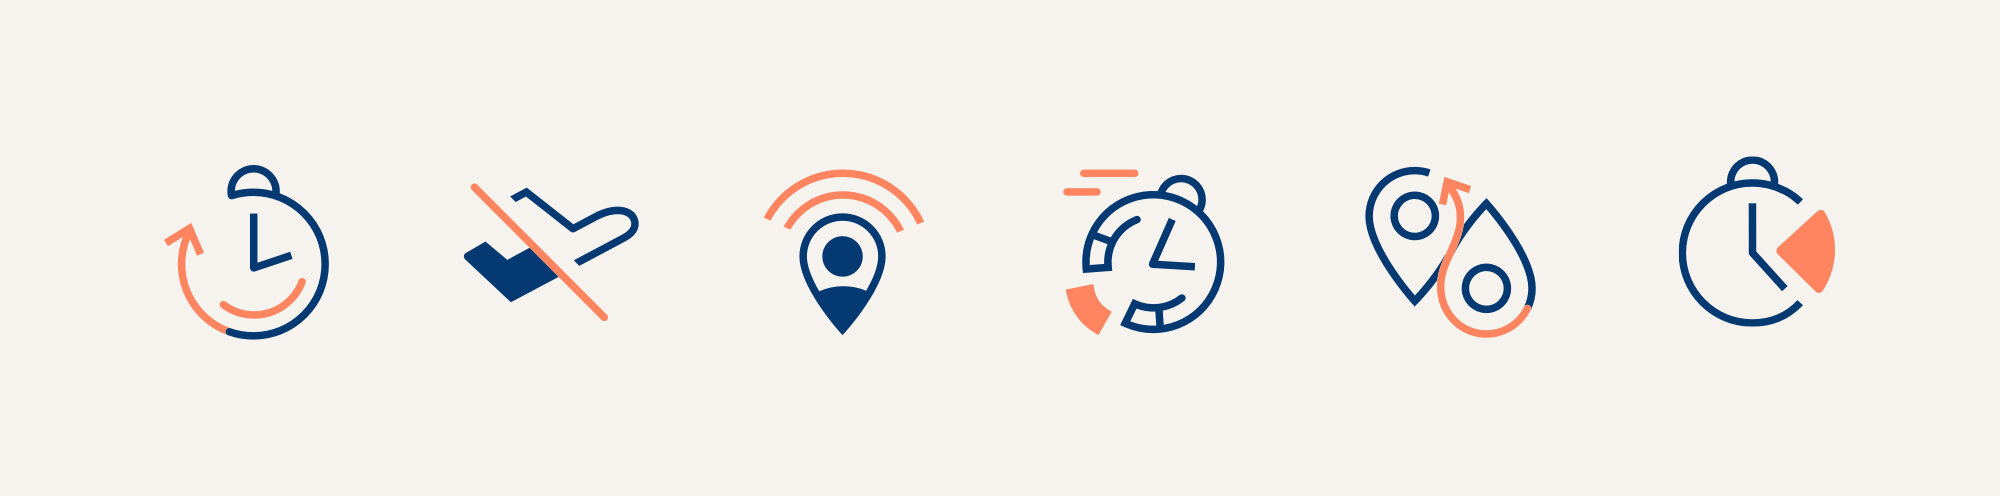 Werk is built on the idea that flexibility is more nuanced than just remote work. These are icons for the 6 types of flexibility at the core of the identity.